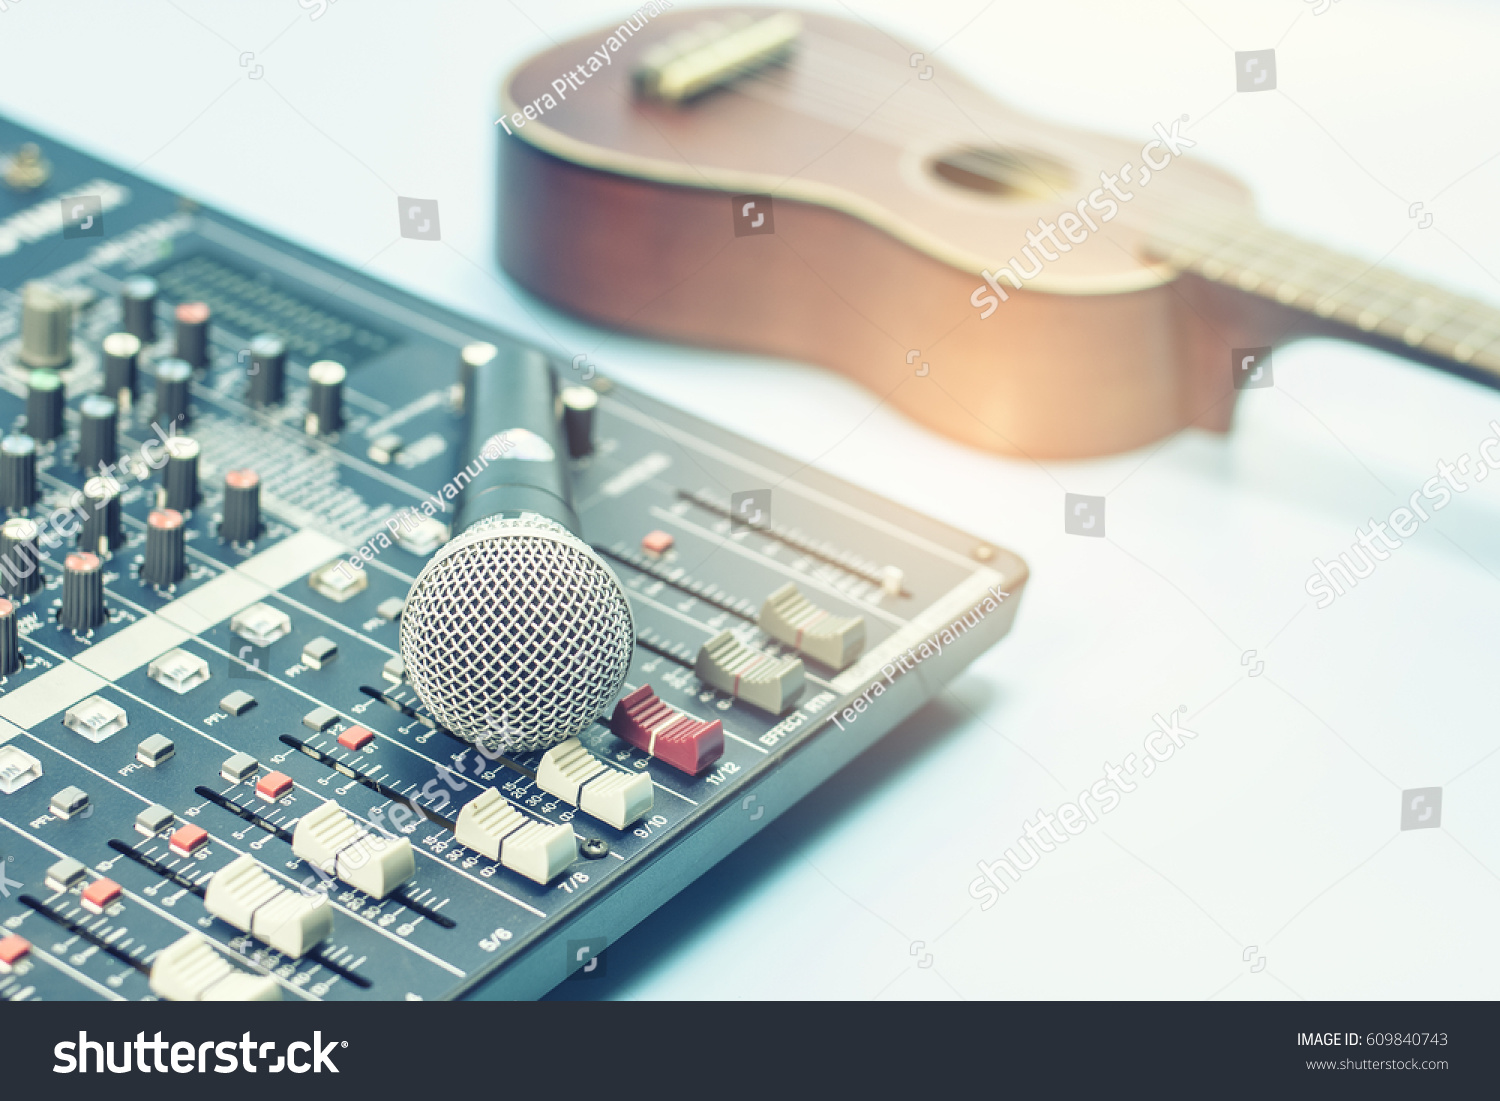 Microphone Audio Mixer Stock Photo Edit Now 609840743 Shutterstock Mic Circuit With